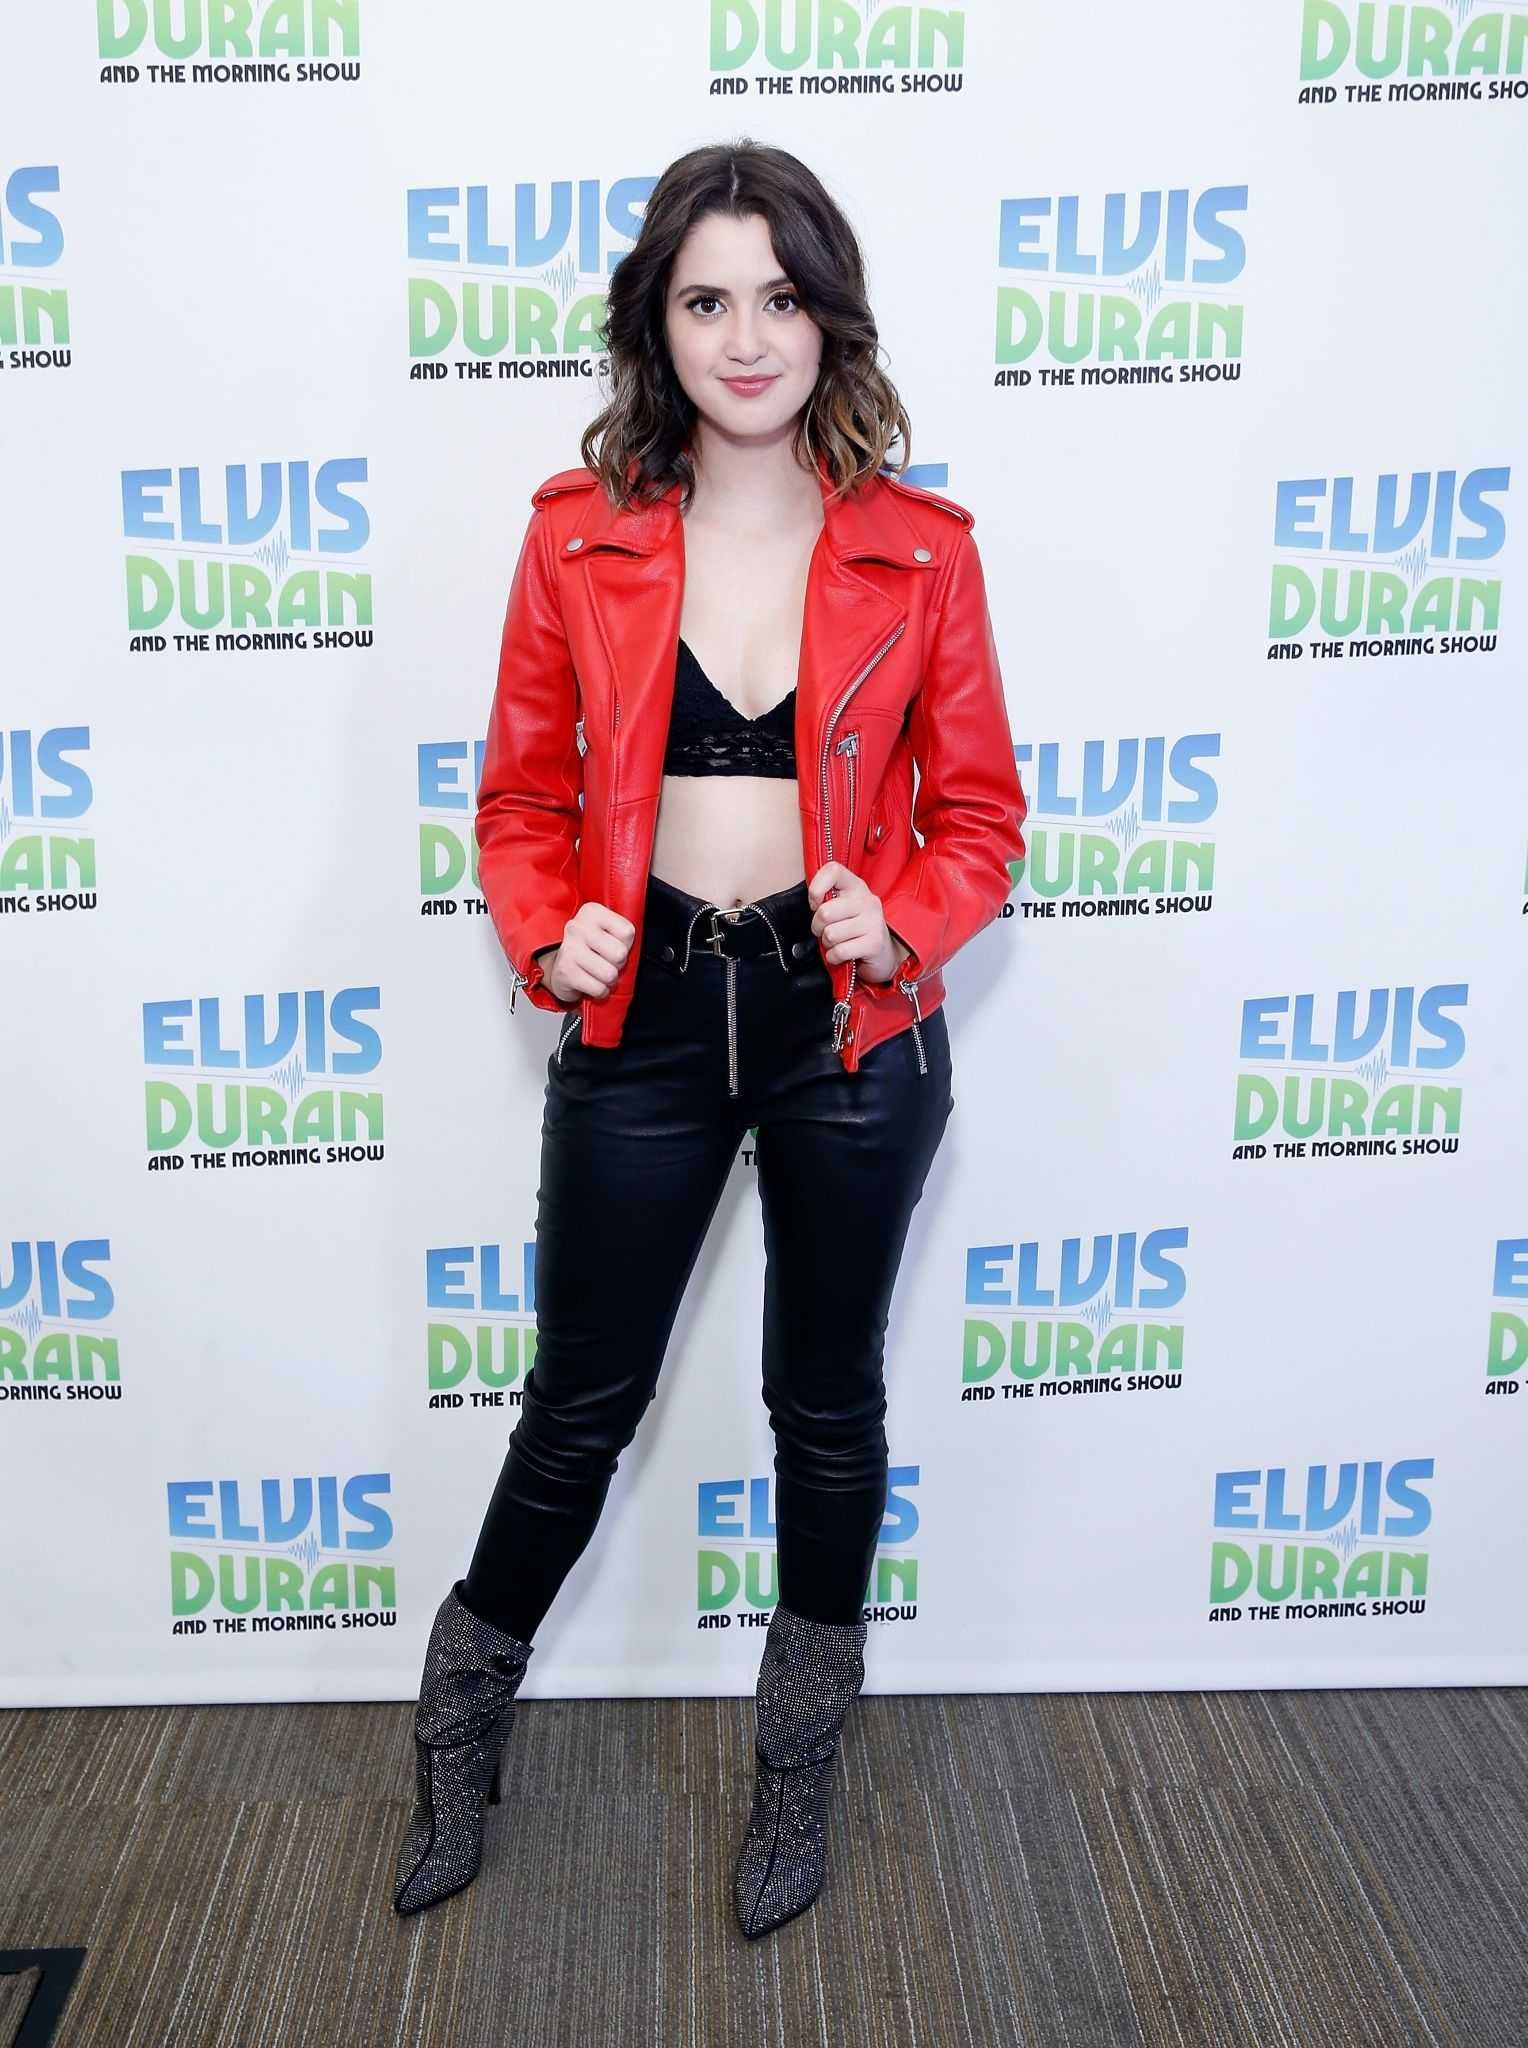 Laura Marano at the Elvis Duran Z100 Morning Show in NYC